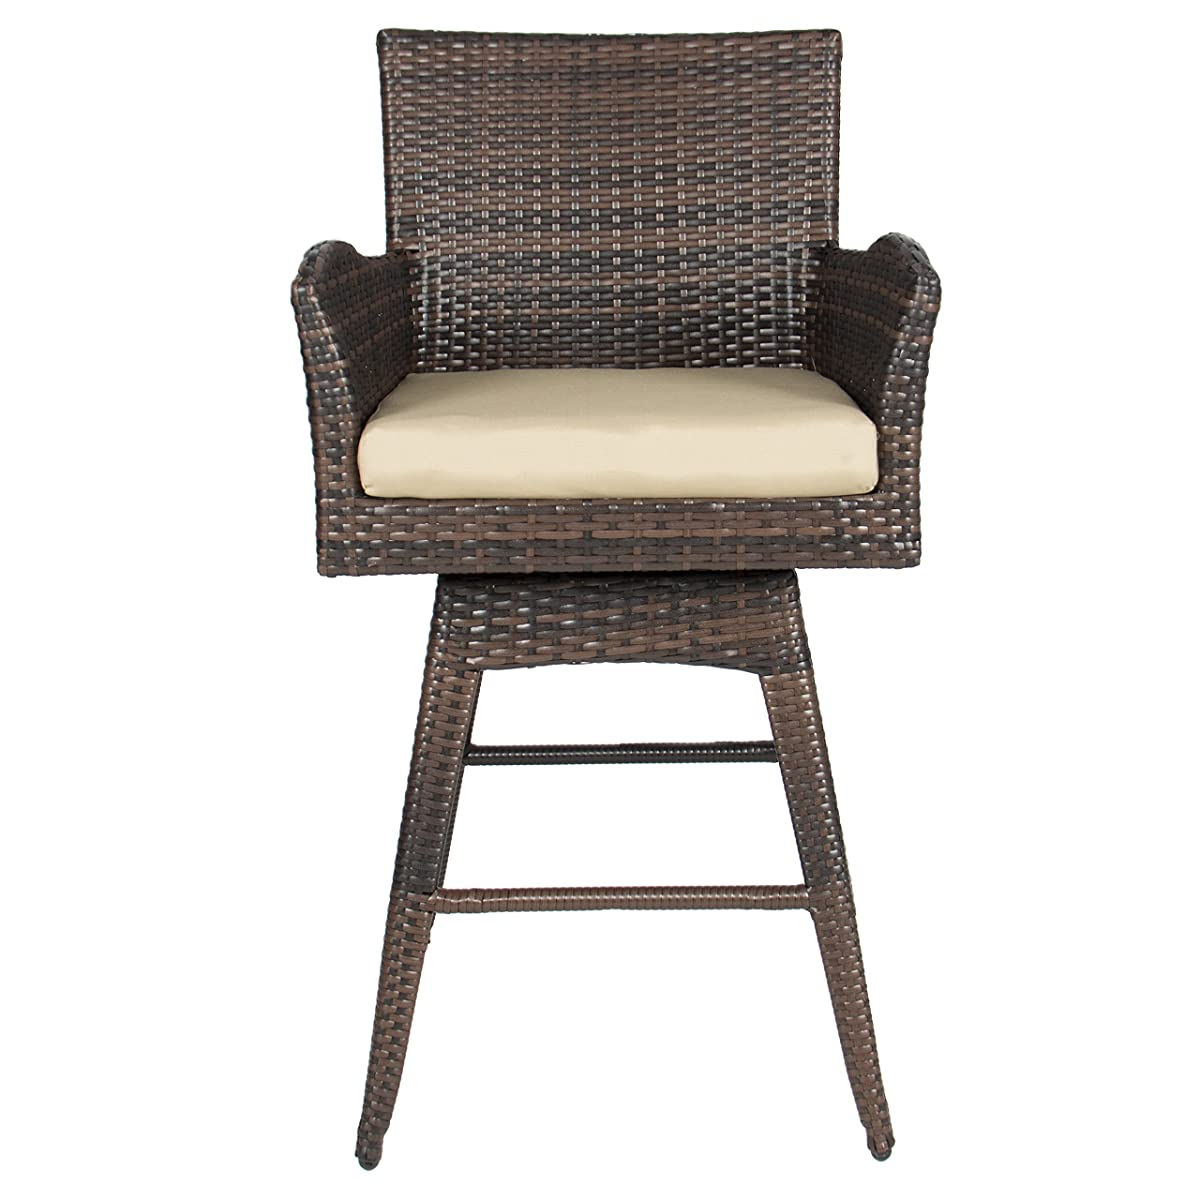 Best Choice Products Outdoor Patio Furniture All-Weather Brown PE Wicker Swivel Bar Stool w/Cushion